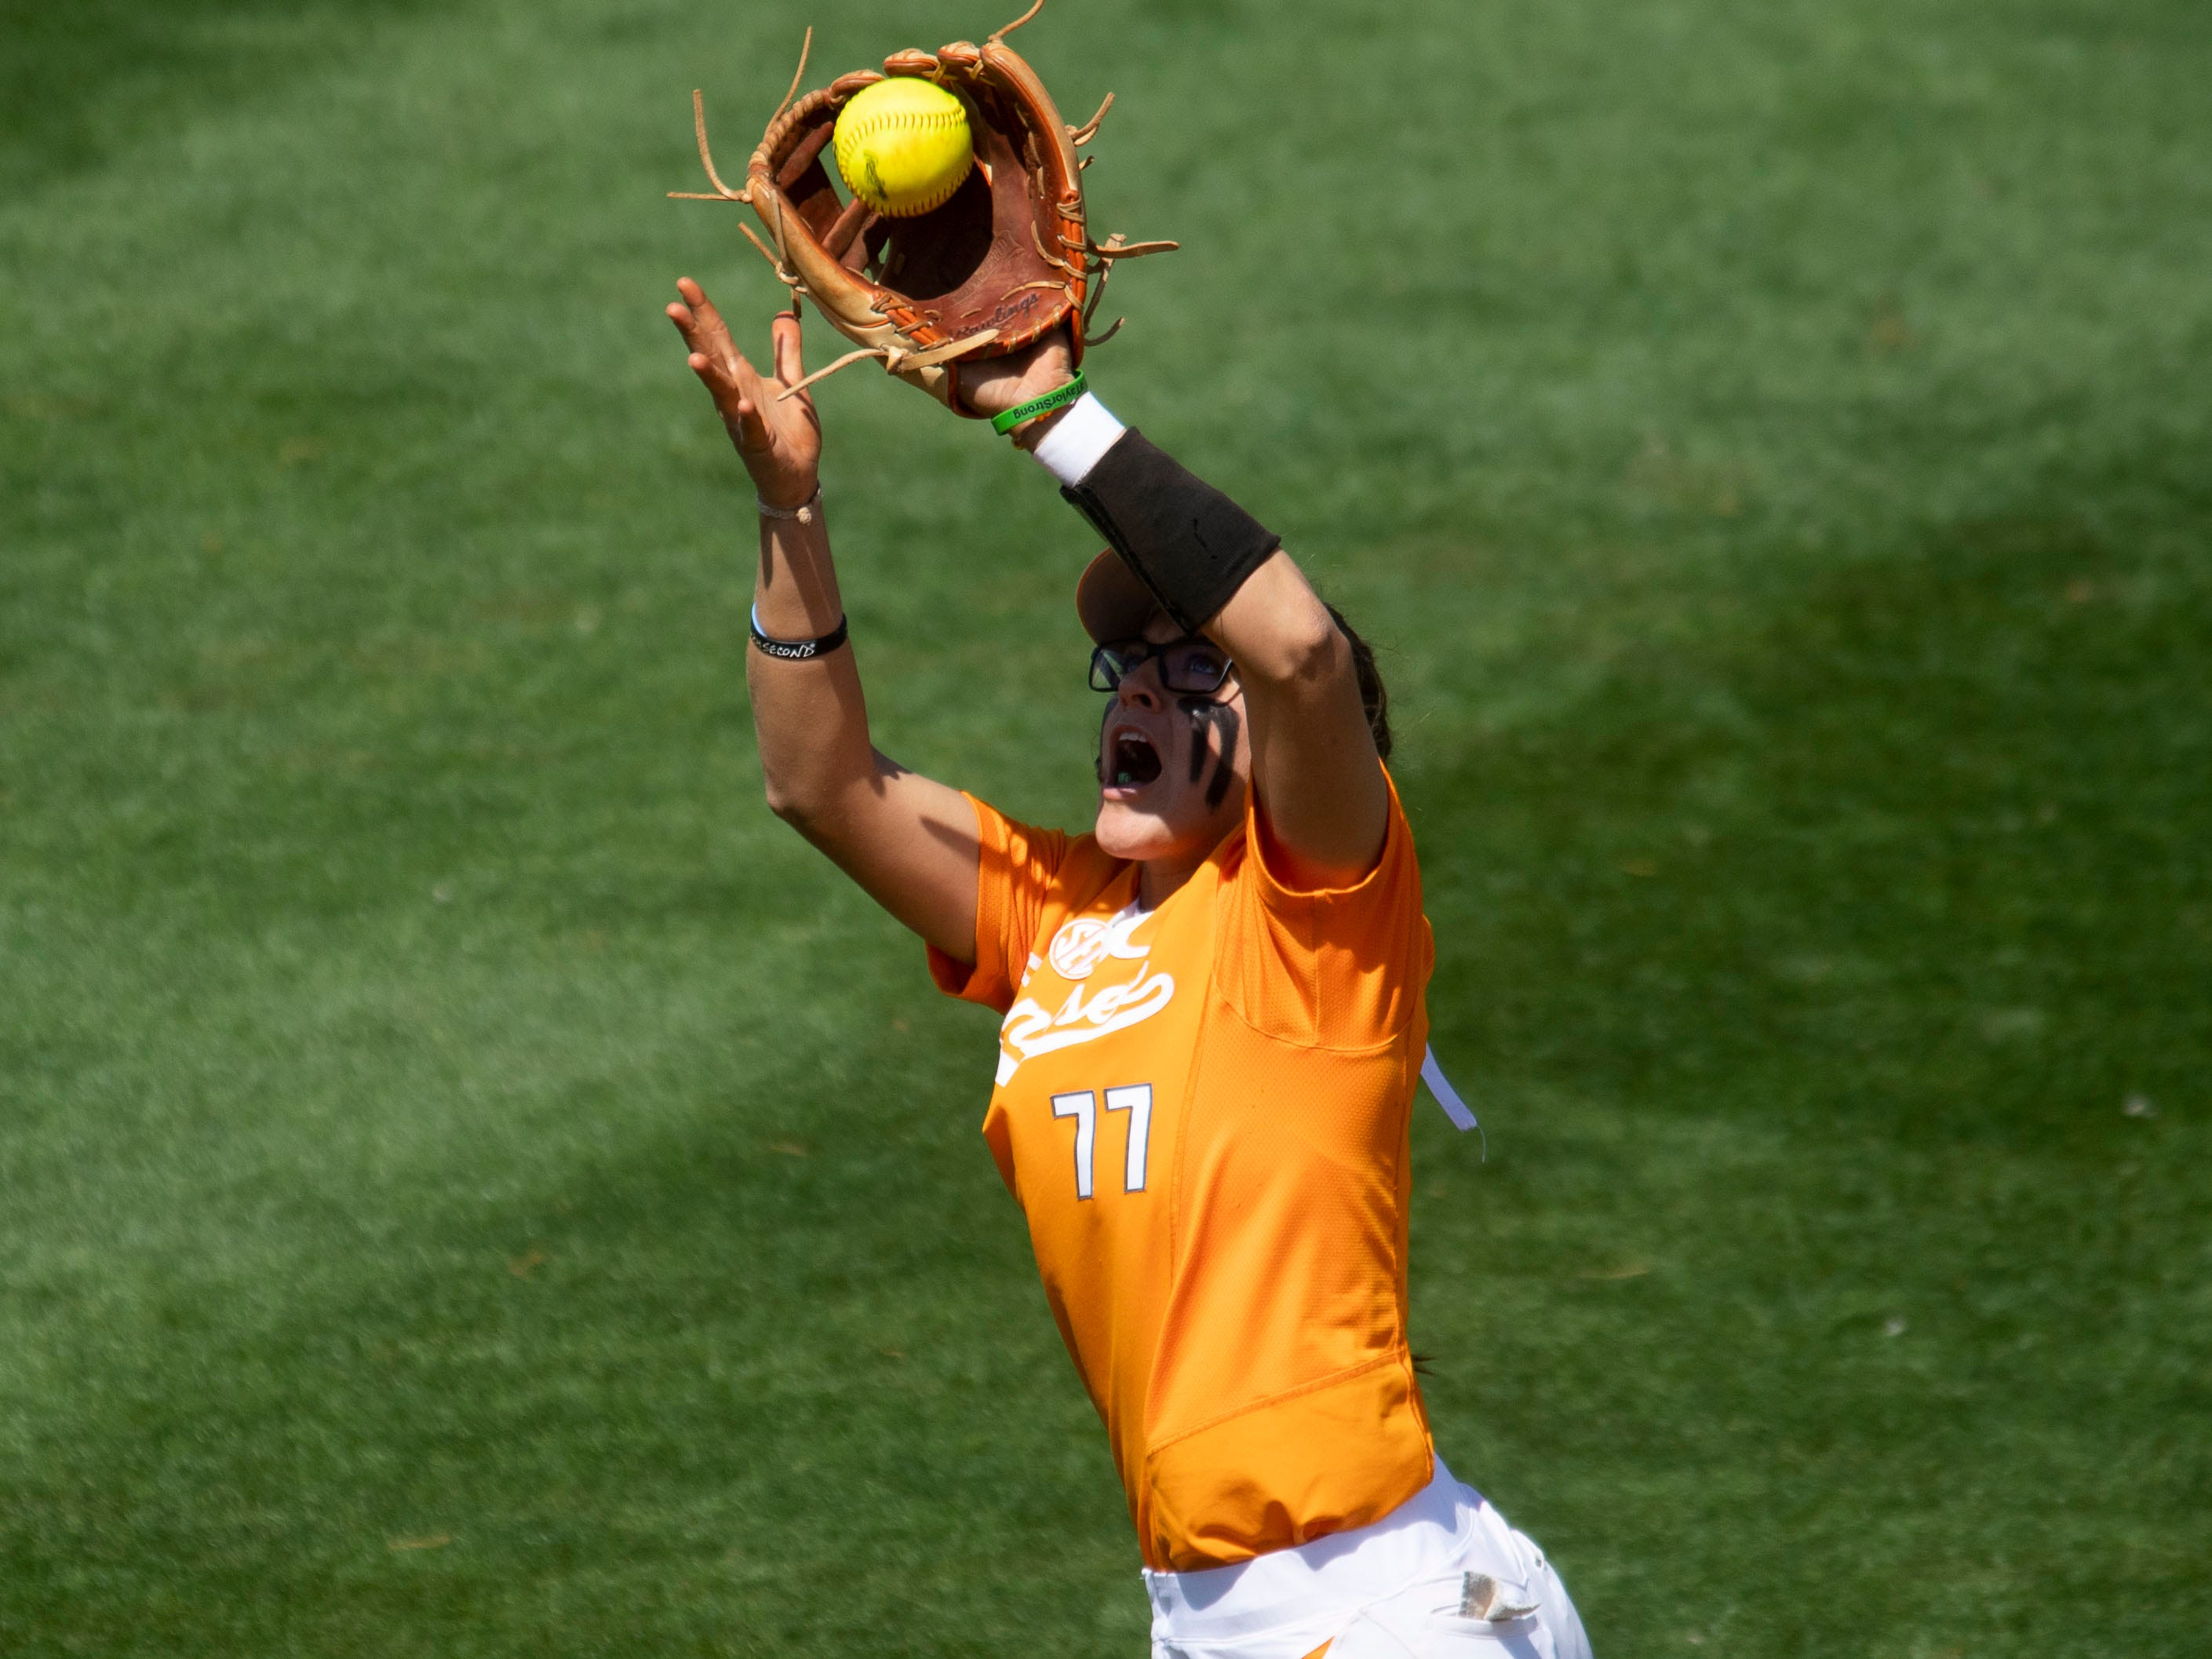 Tennessee's Gracie Osbron (77) catches a fly ball in the game against Mississippi State at Sherri Parker Lee Stadium on Sunday, April 14, 2019.